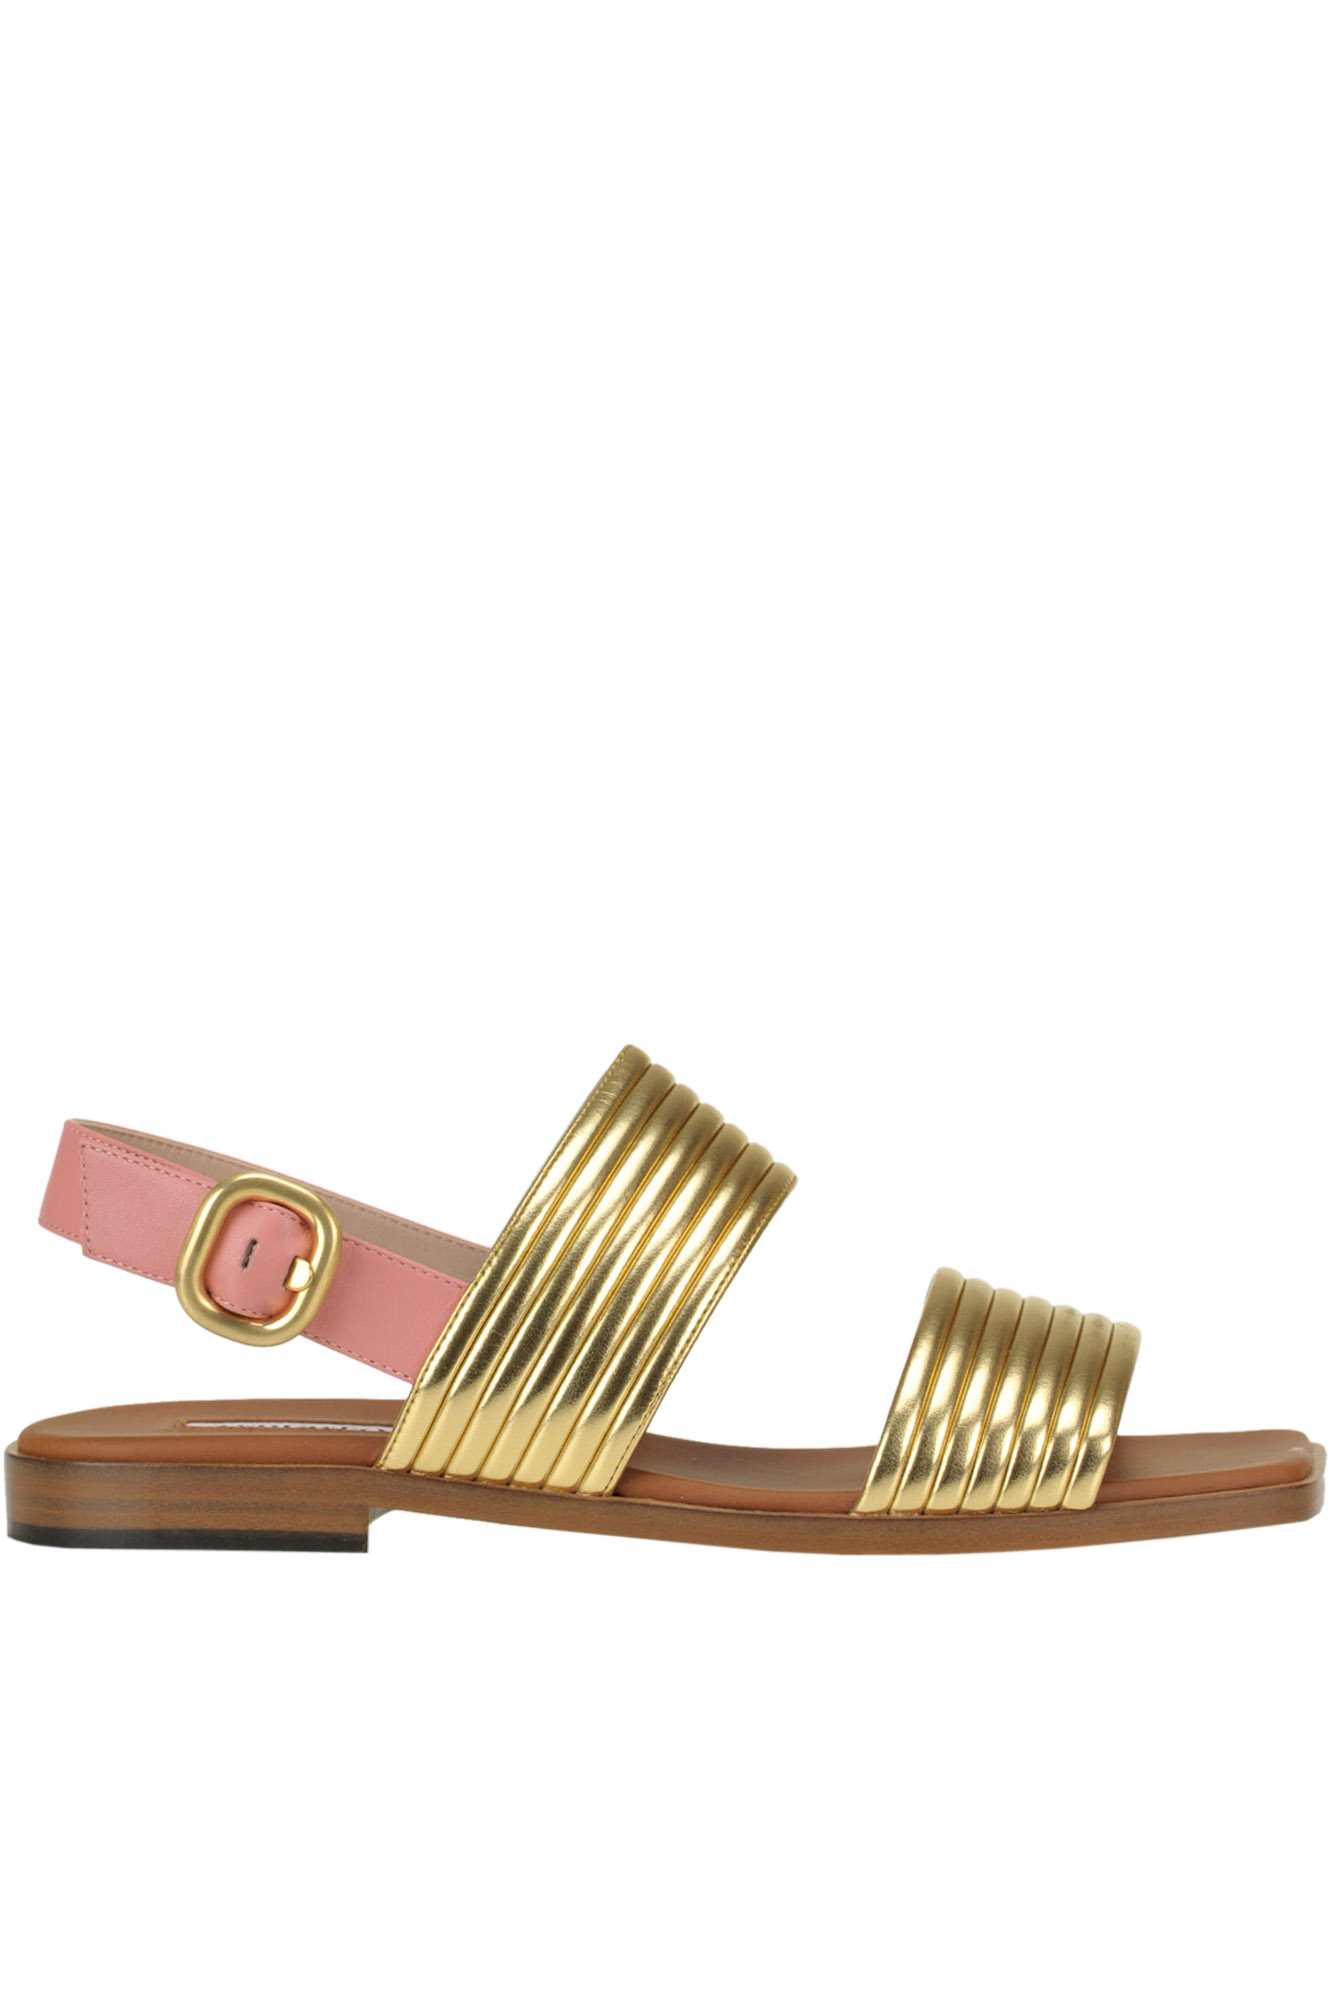 Alberto Gozzi METALLIC EFFECT LEATHER SANDALS